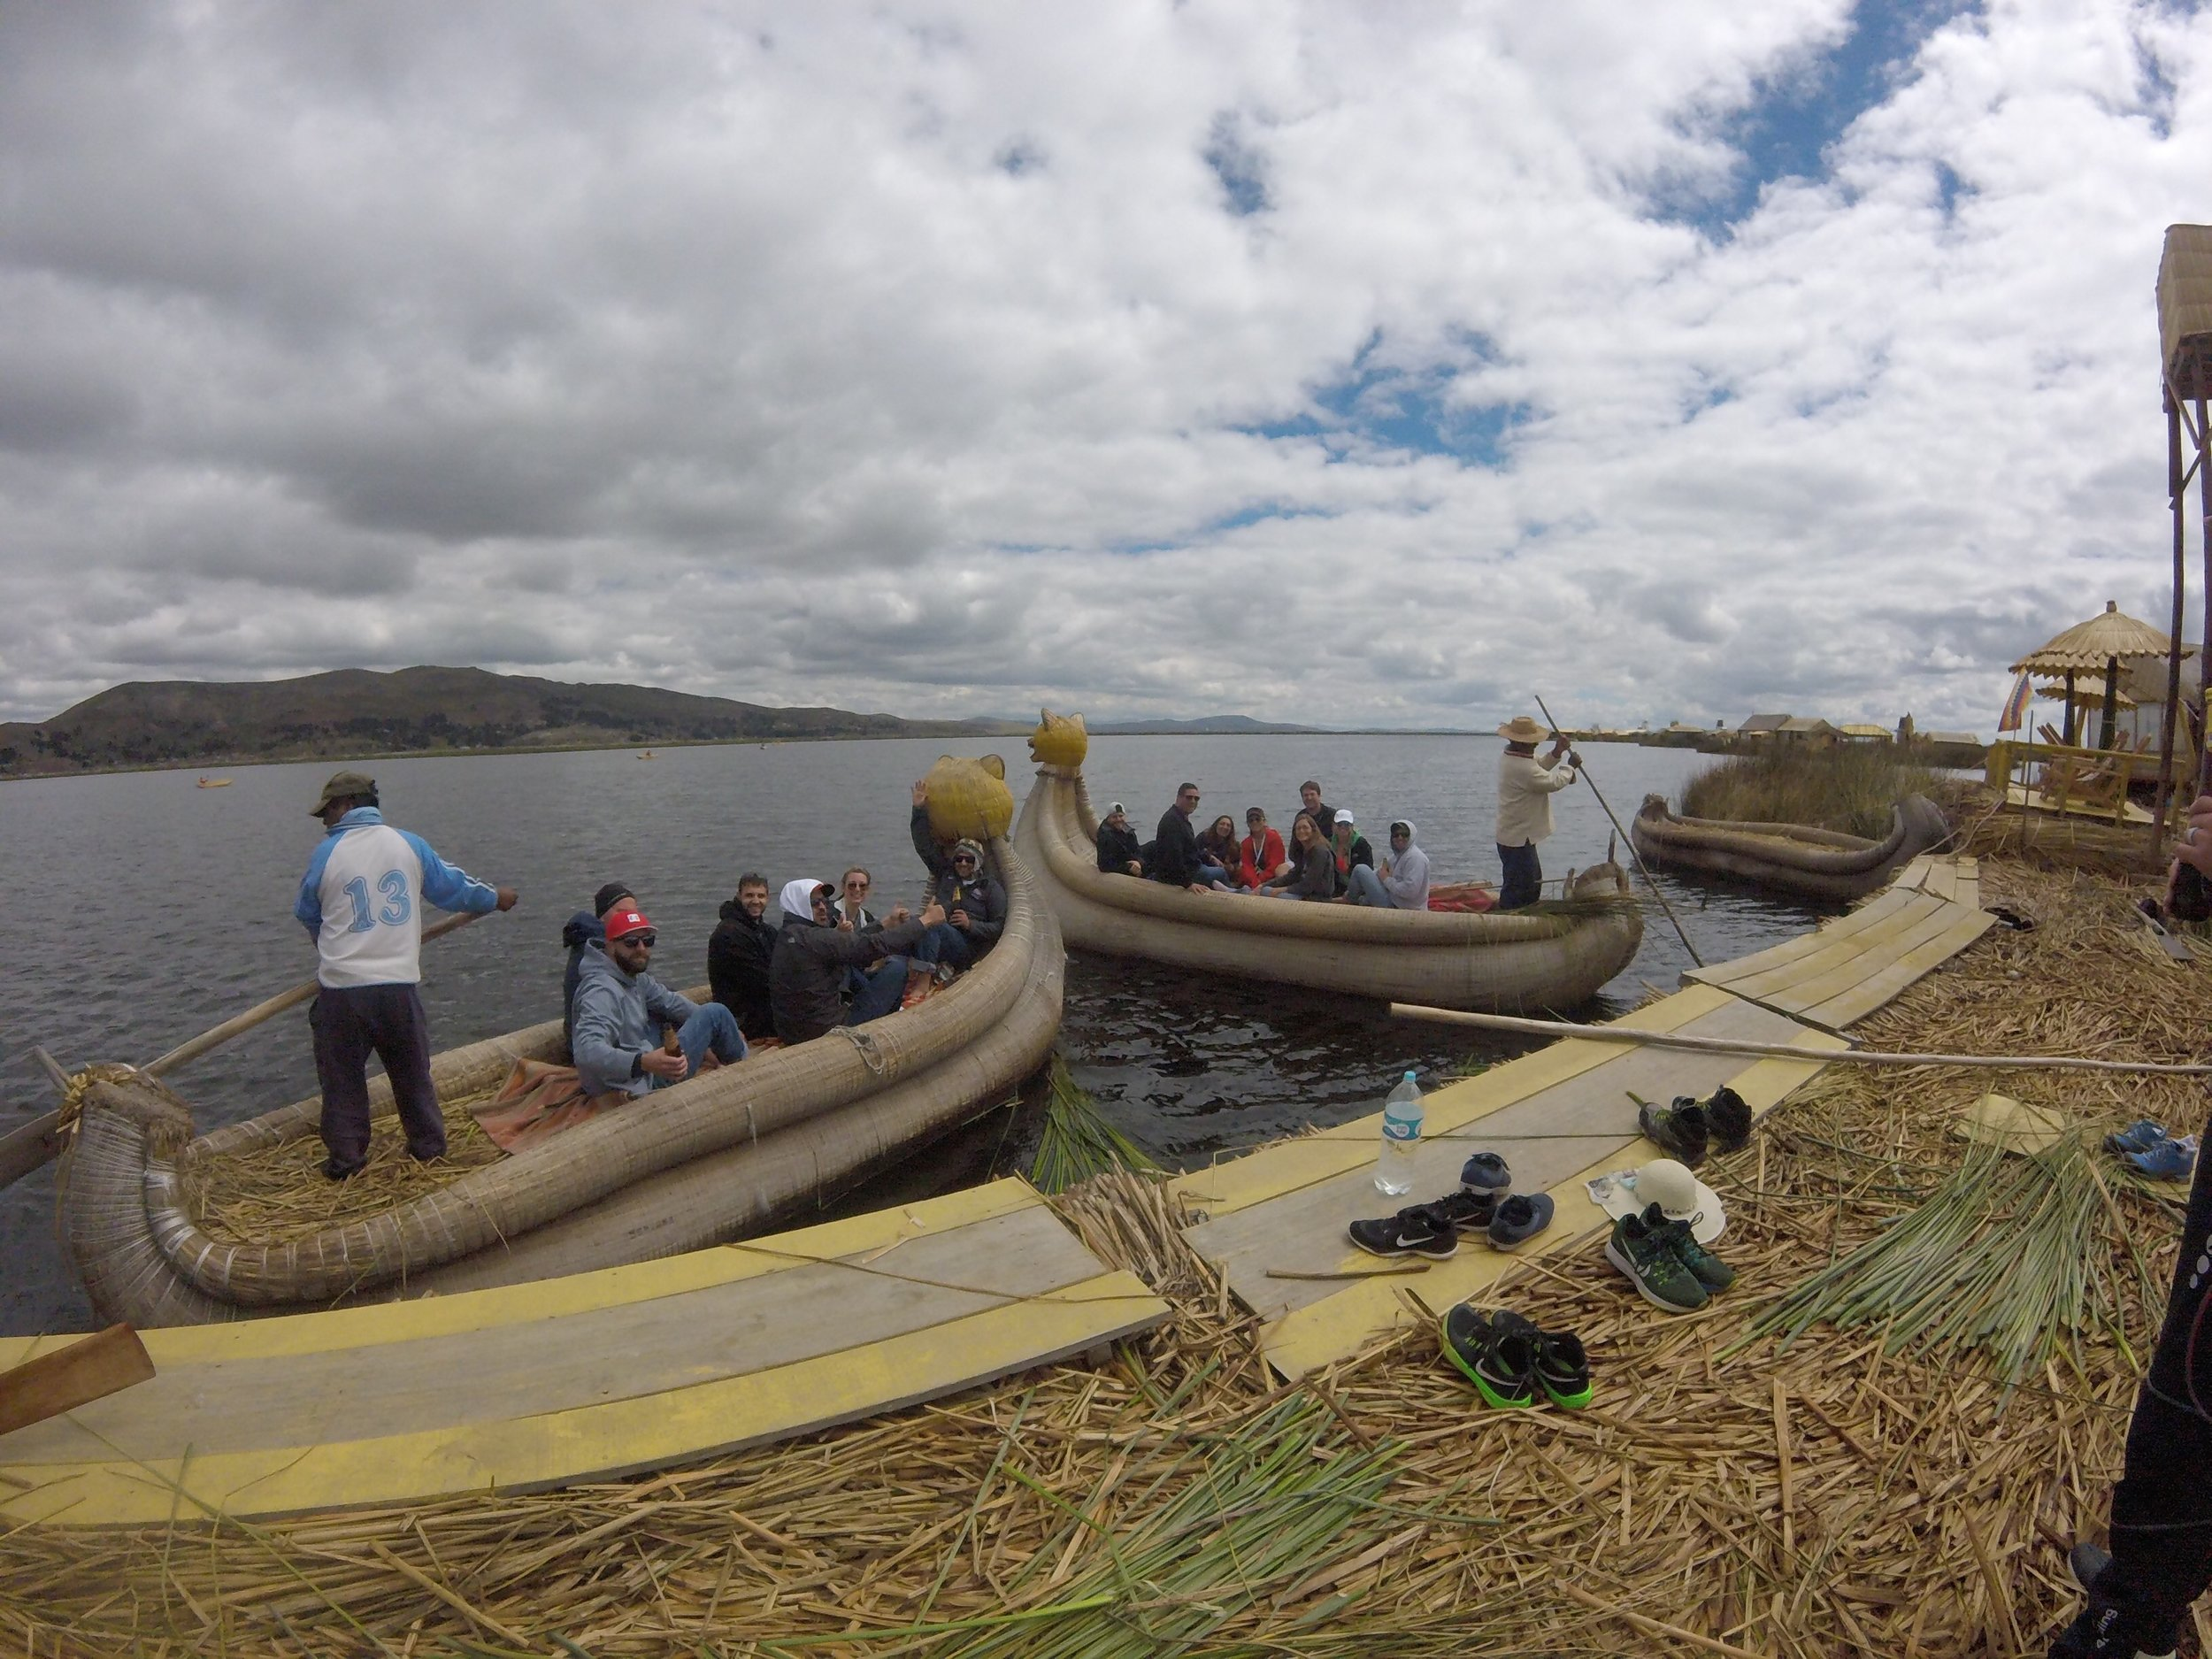 Bon voyage! We're off to explore Lake Titicaca.